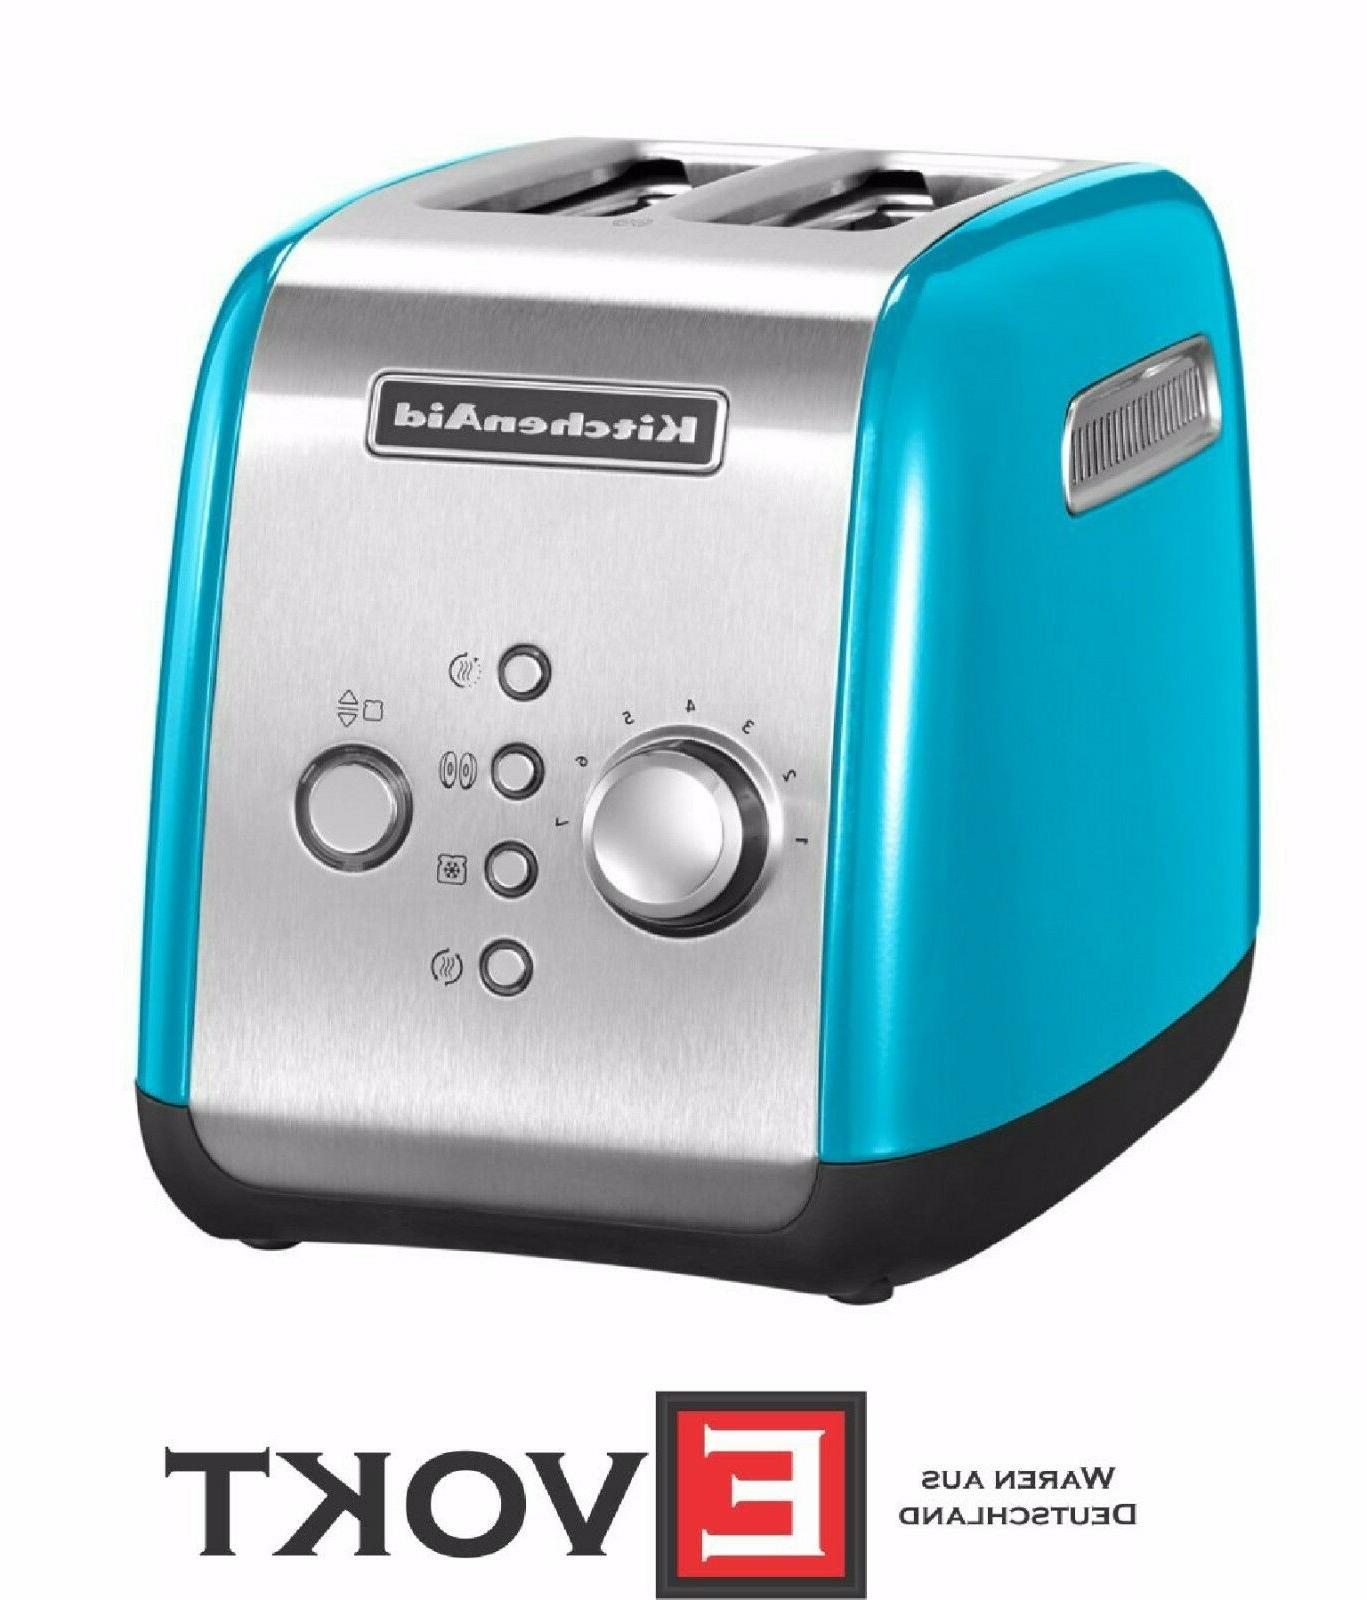 Kitchenaid 5KMT221ECL Toaster  for 2 panes of all-metal hous